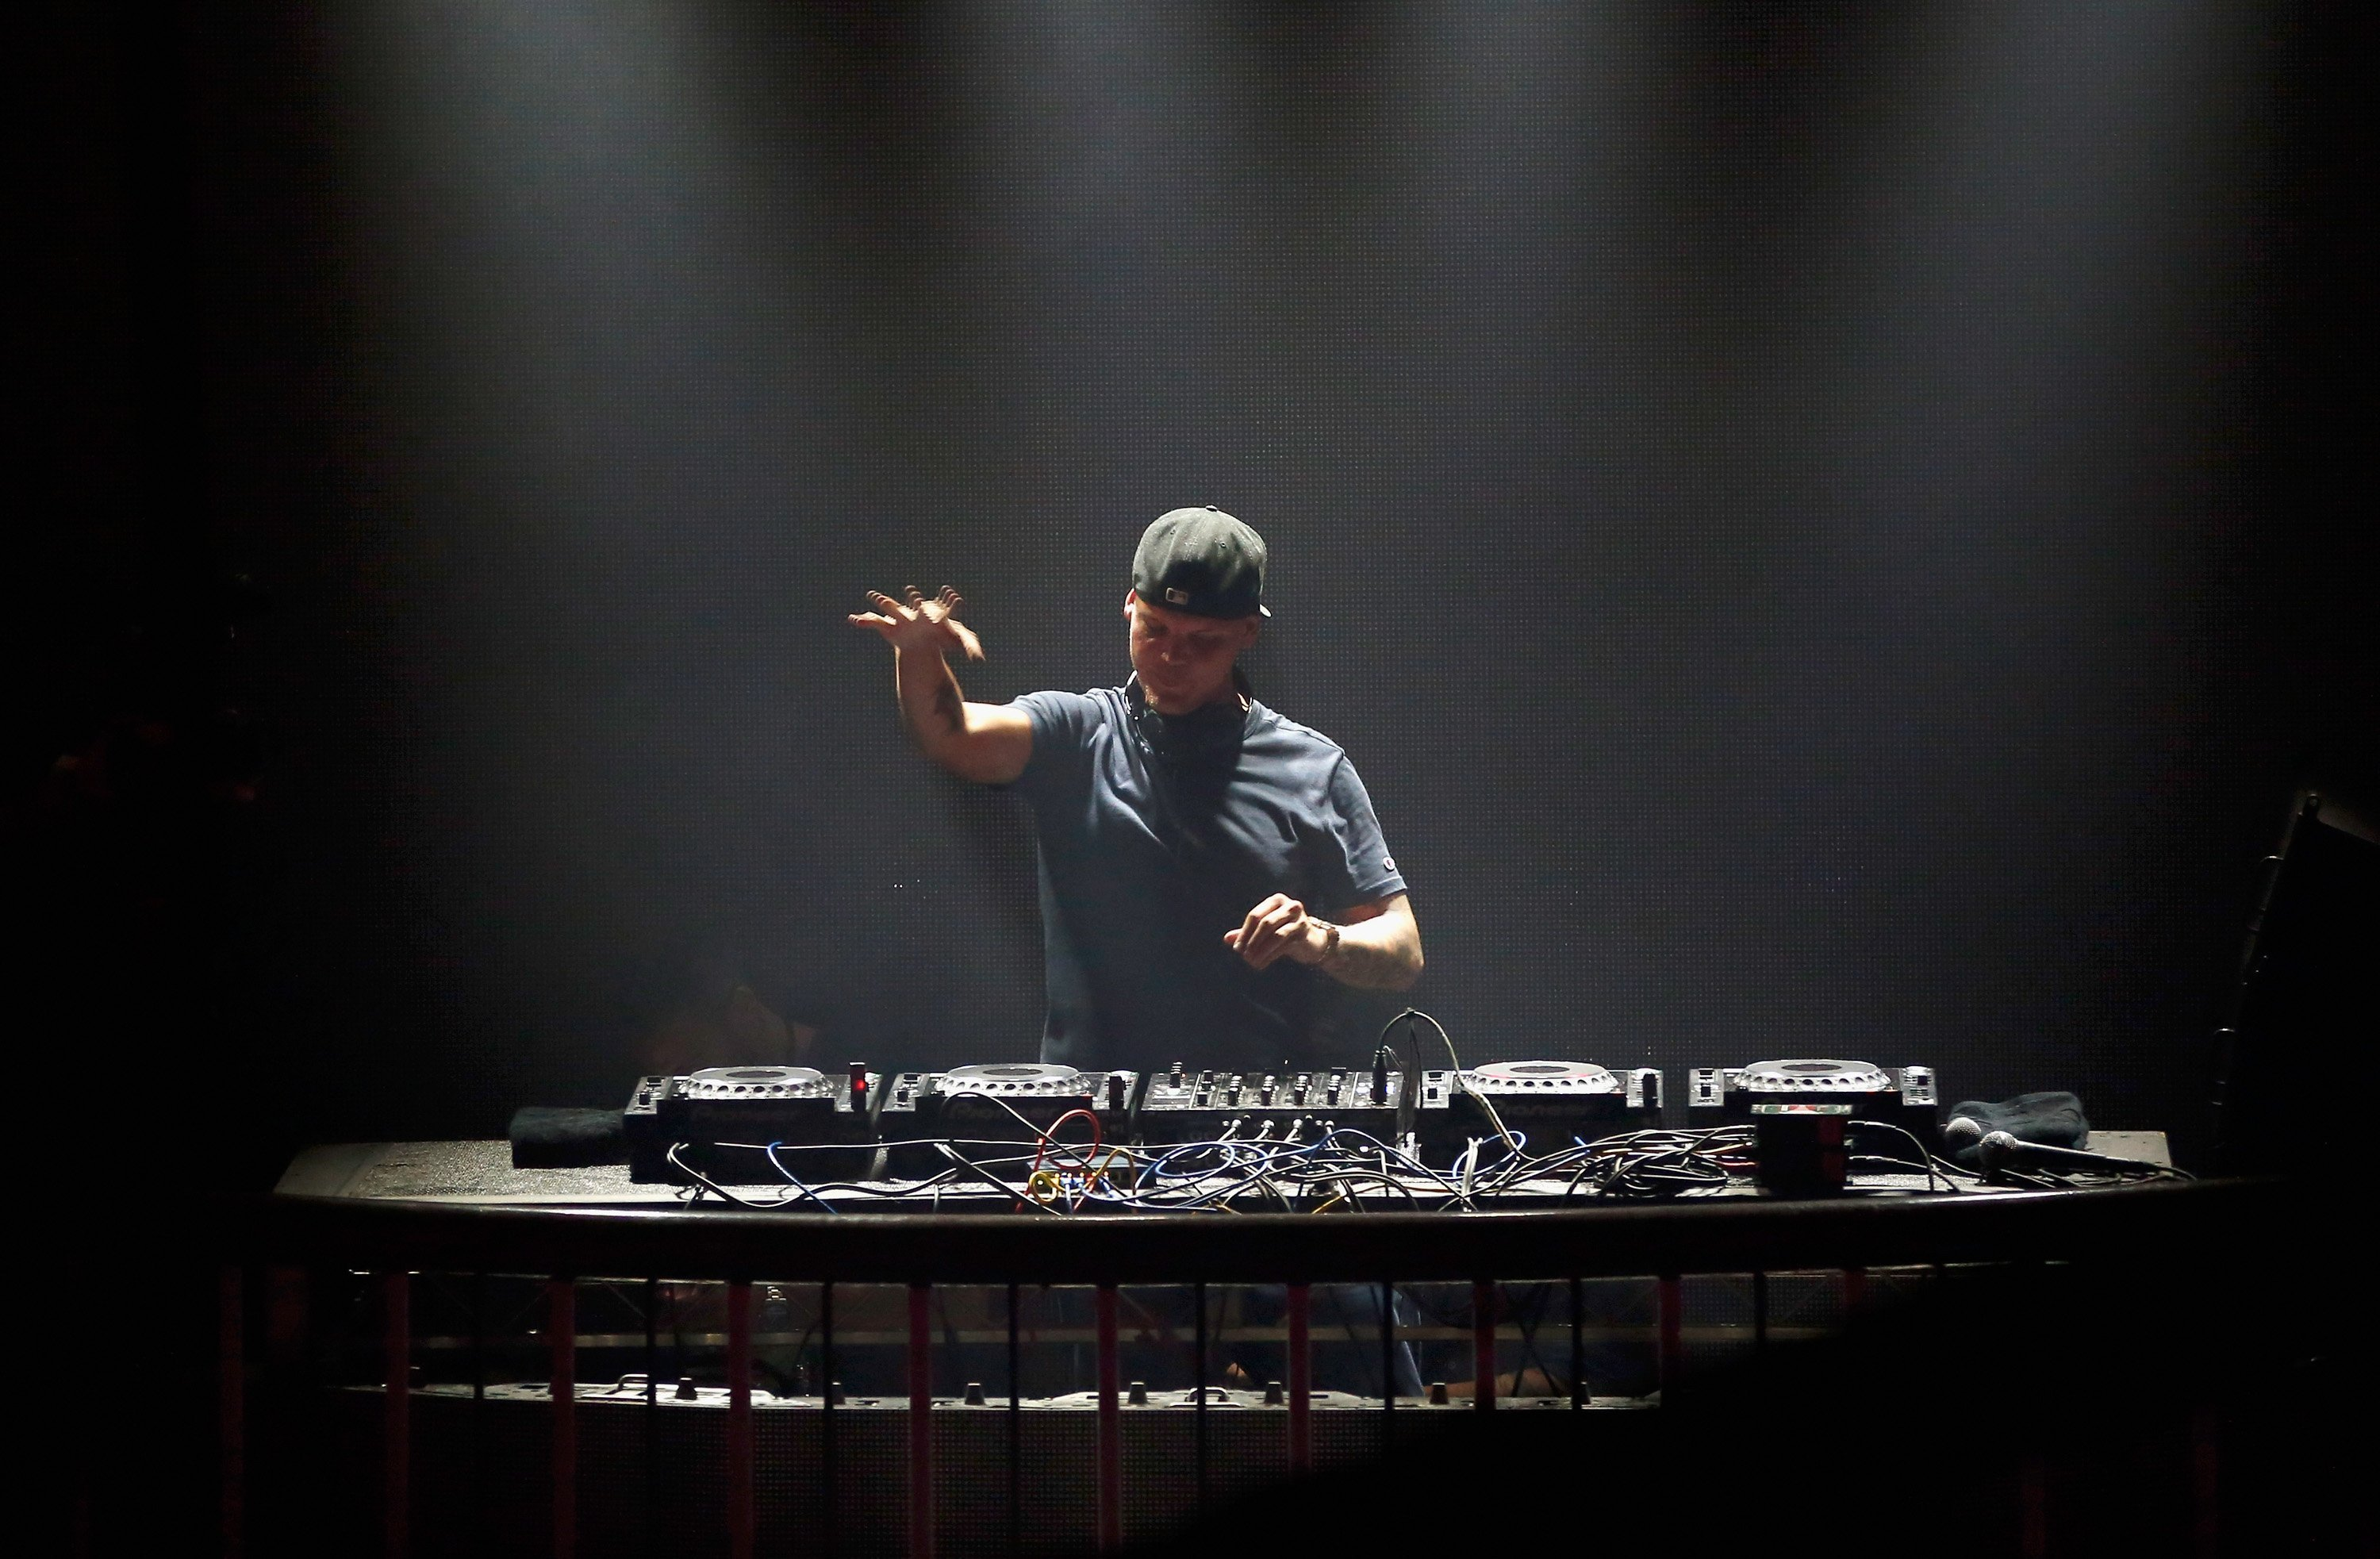 Tributes to DJ Avicii - last seen partying with his pals in Oman